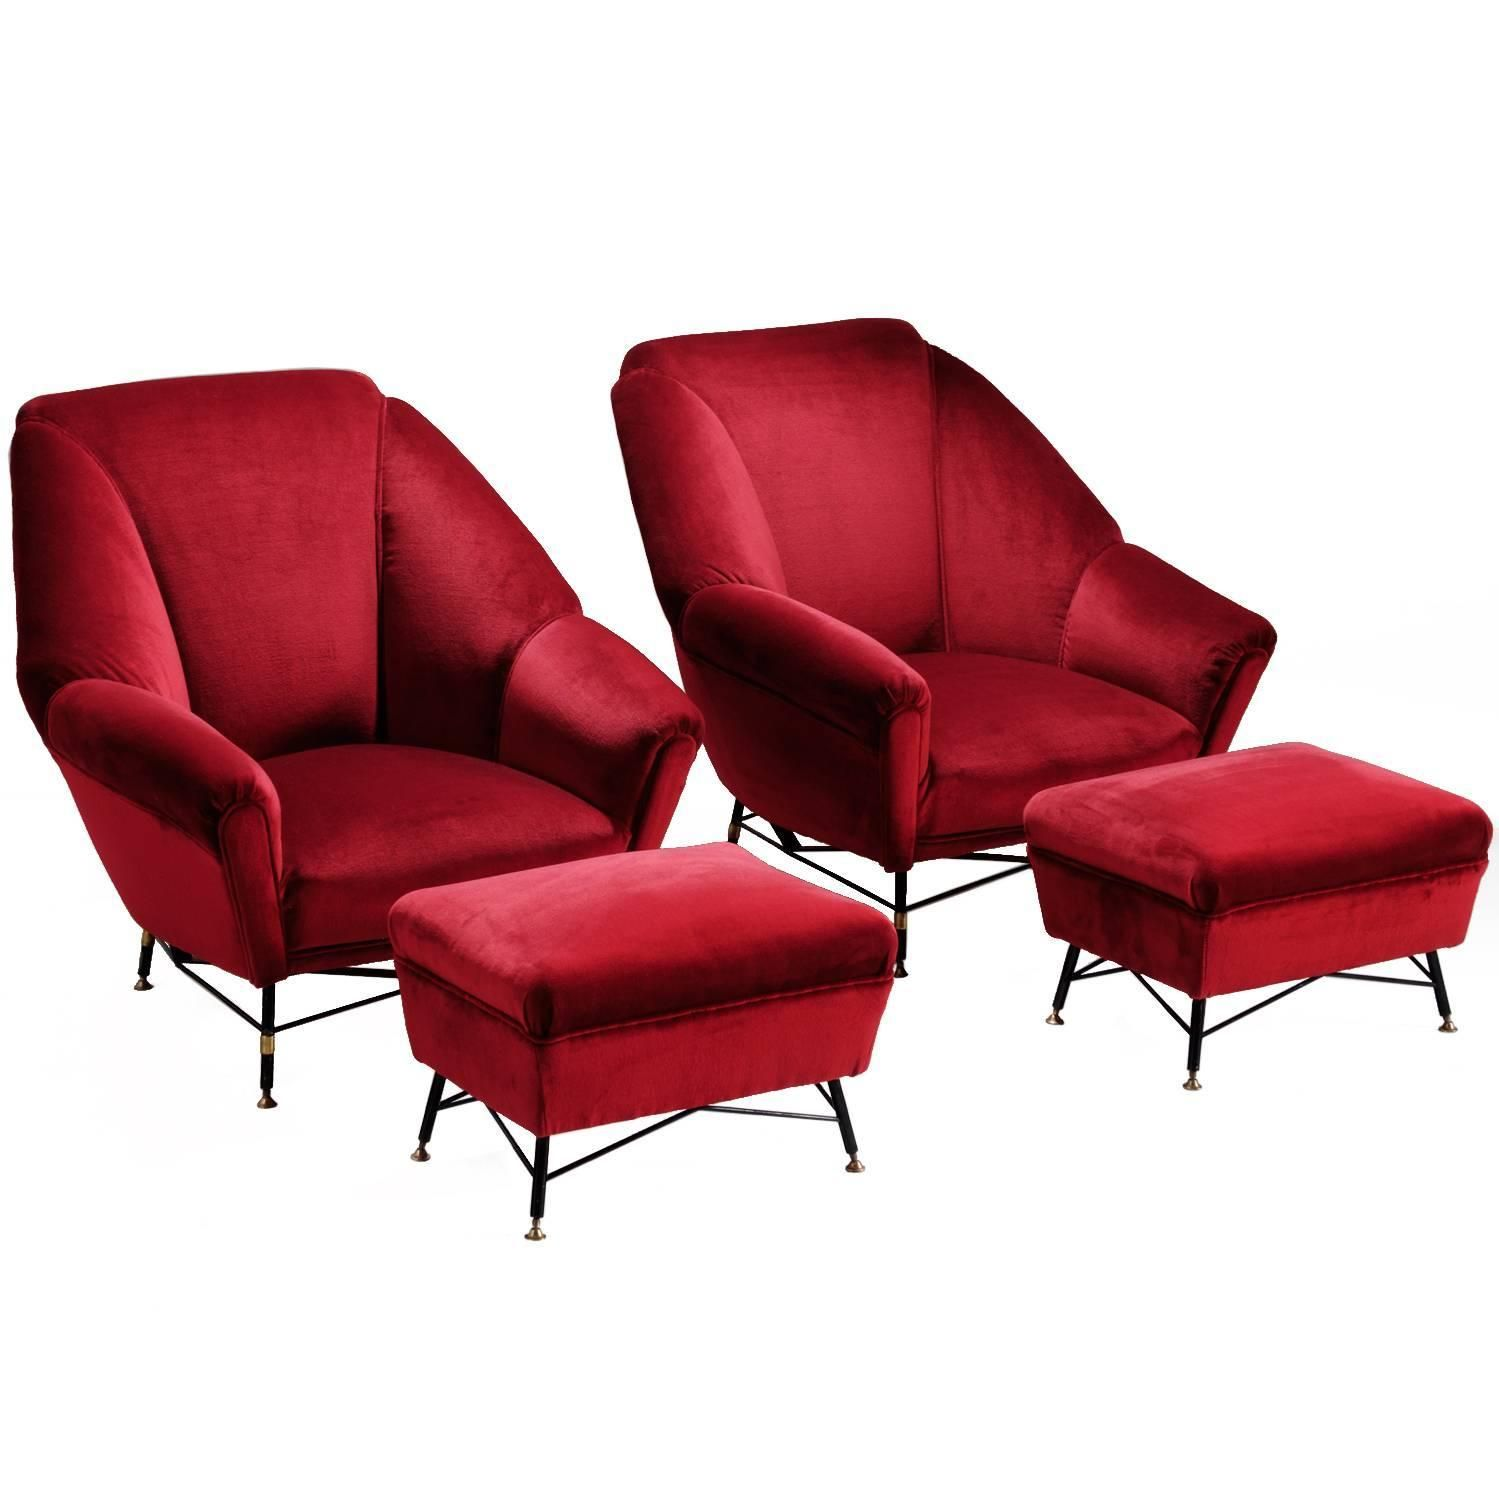 Italien red velvet lounge chair with ottoman